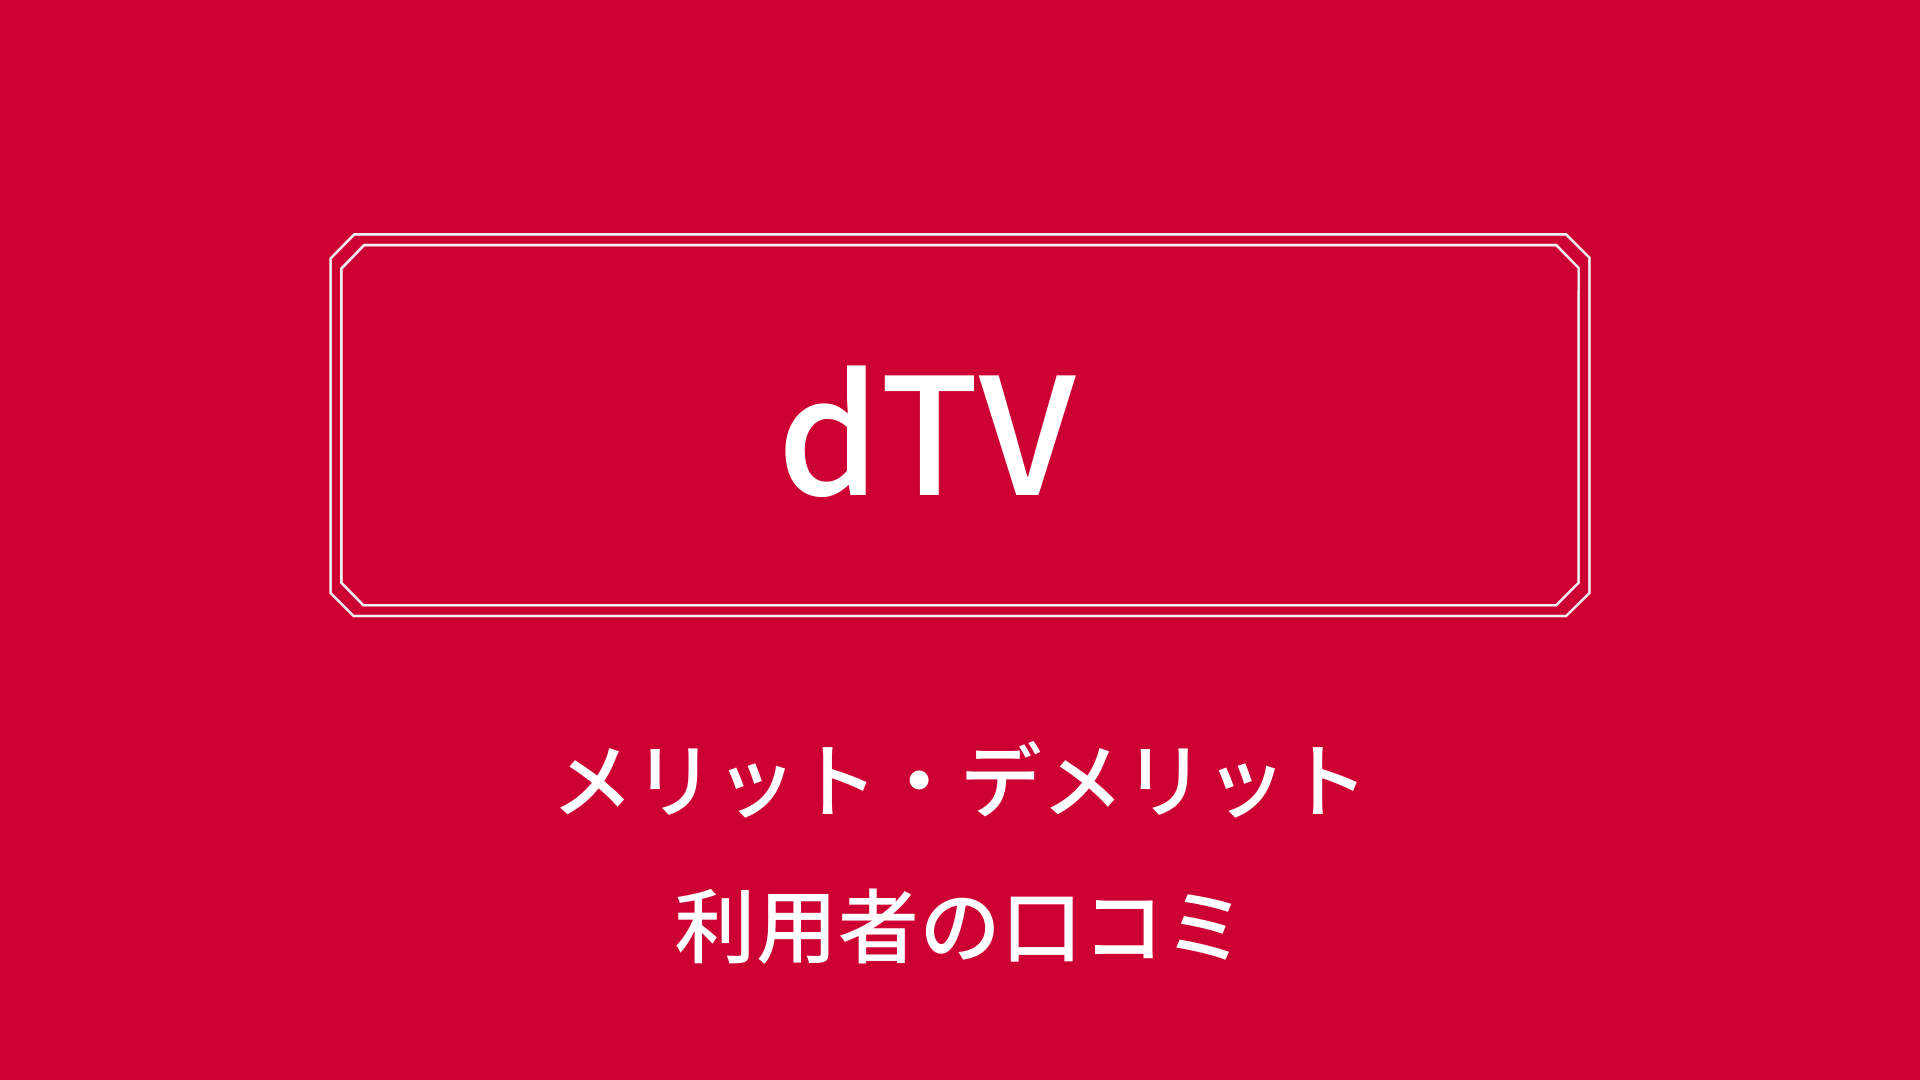 dTVのメリット・デメリット、料金や評判を解説!【ディーティービー】